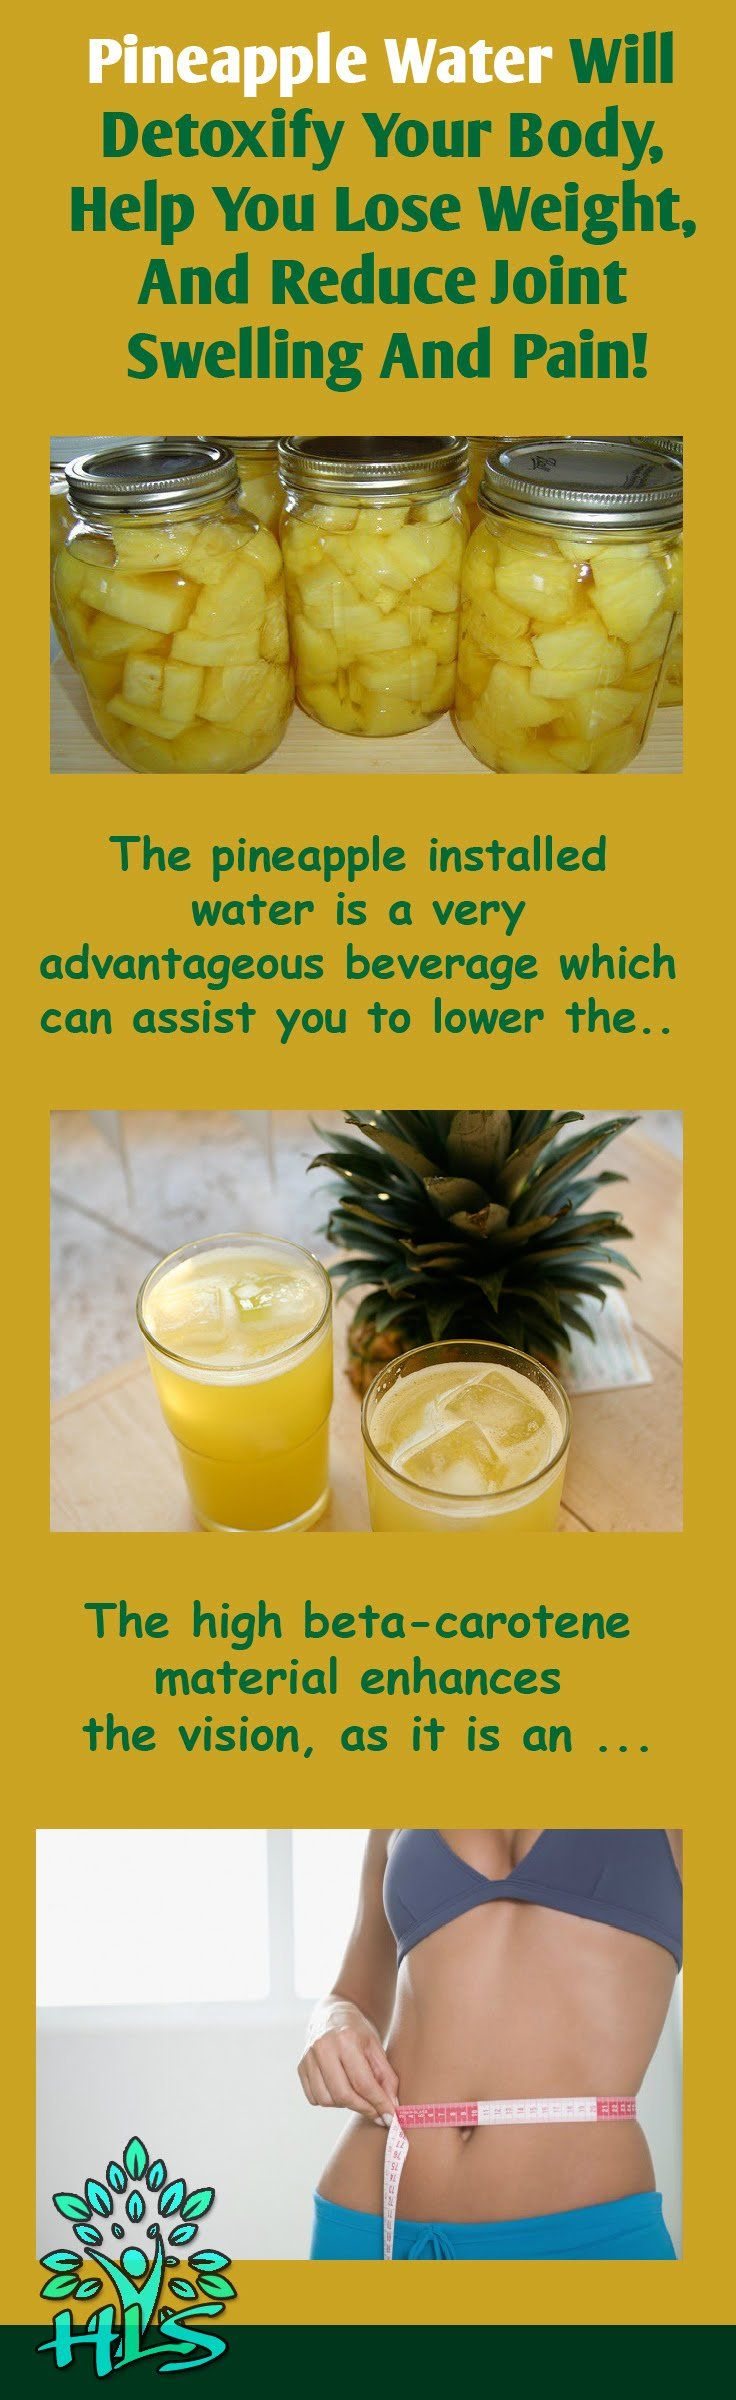 Pineapples are tropical fruits which are an abundant source of numerous important nutrients required for your optimum health.